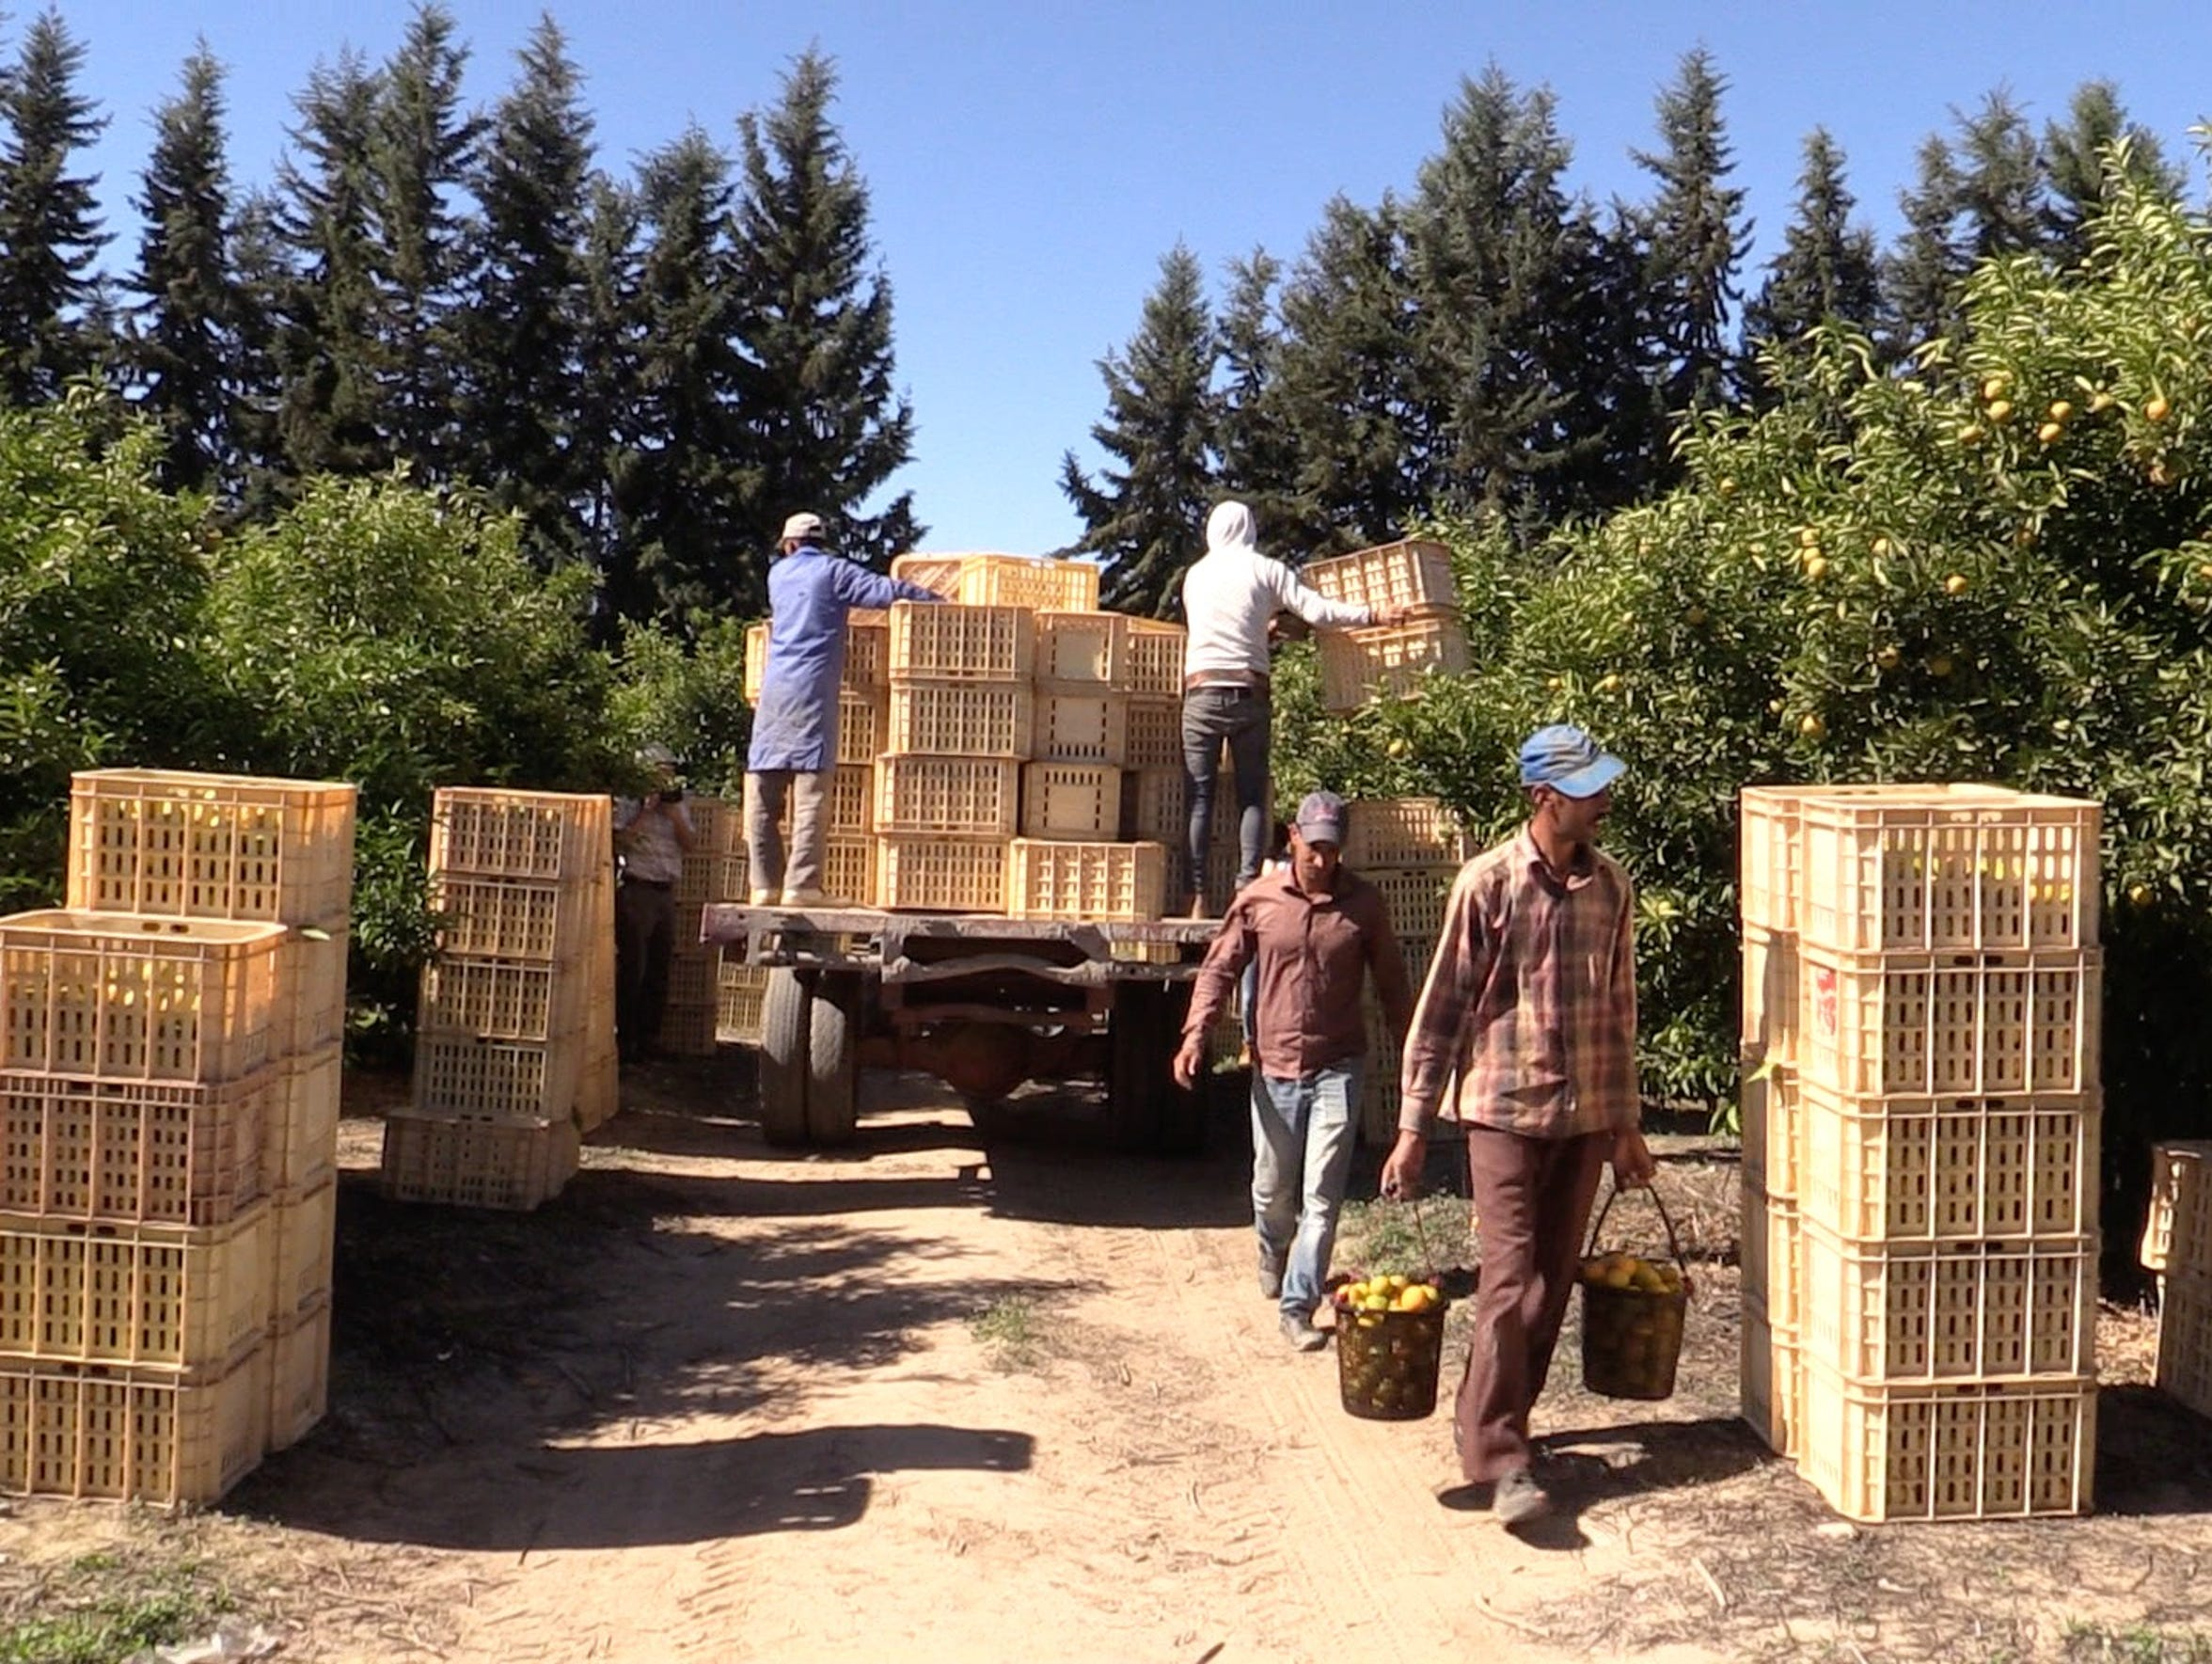 Workers harvest clementines on a large farm near Taroudant